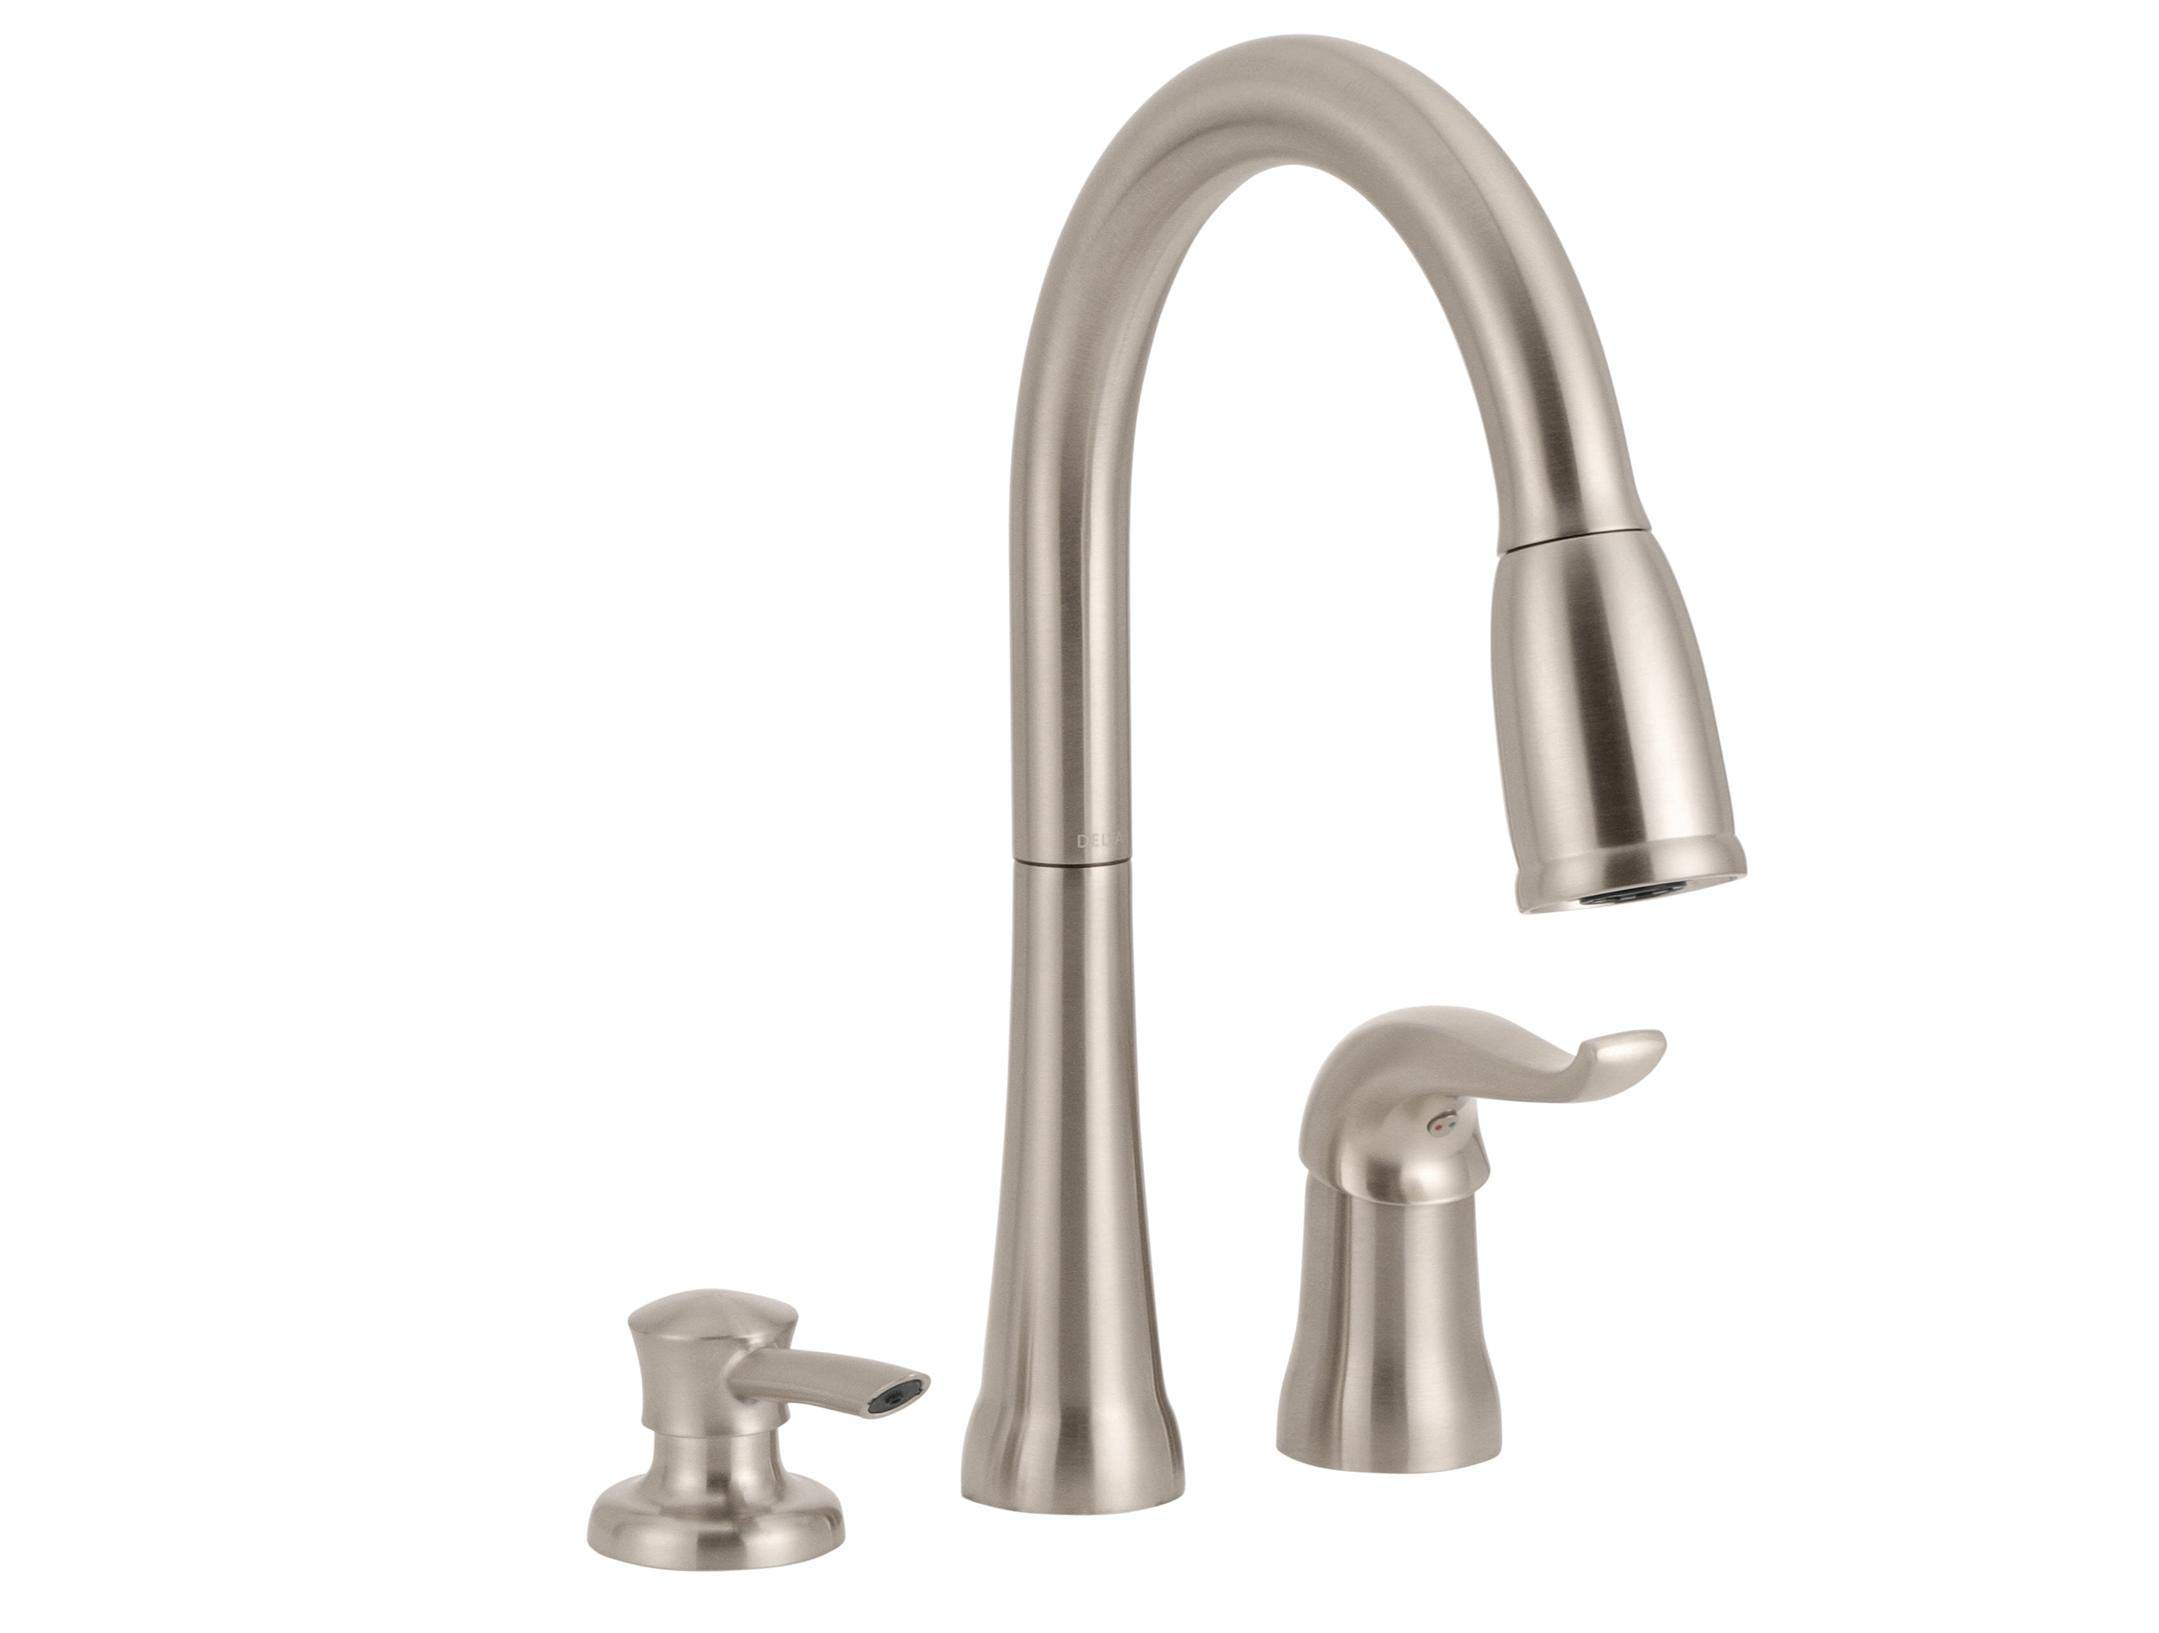 Delta Faucet Kate Single-Handle Kitchen Sink Faucet with Pull Down Sprayer, Soap Dispenser and Magnetic Docking Spray Head, Stainless 16970-SSSD-DST by DELTA FAUCET